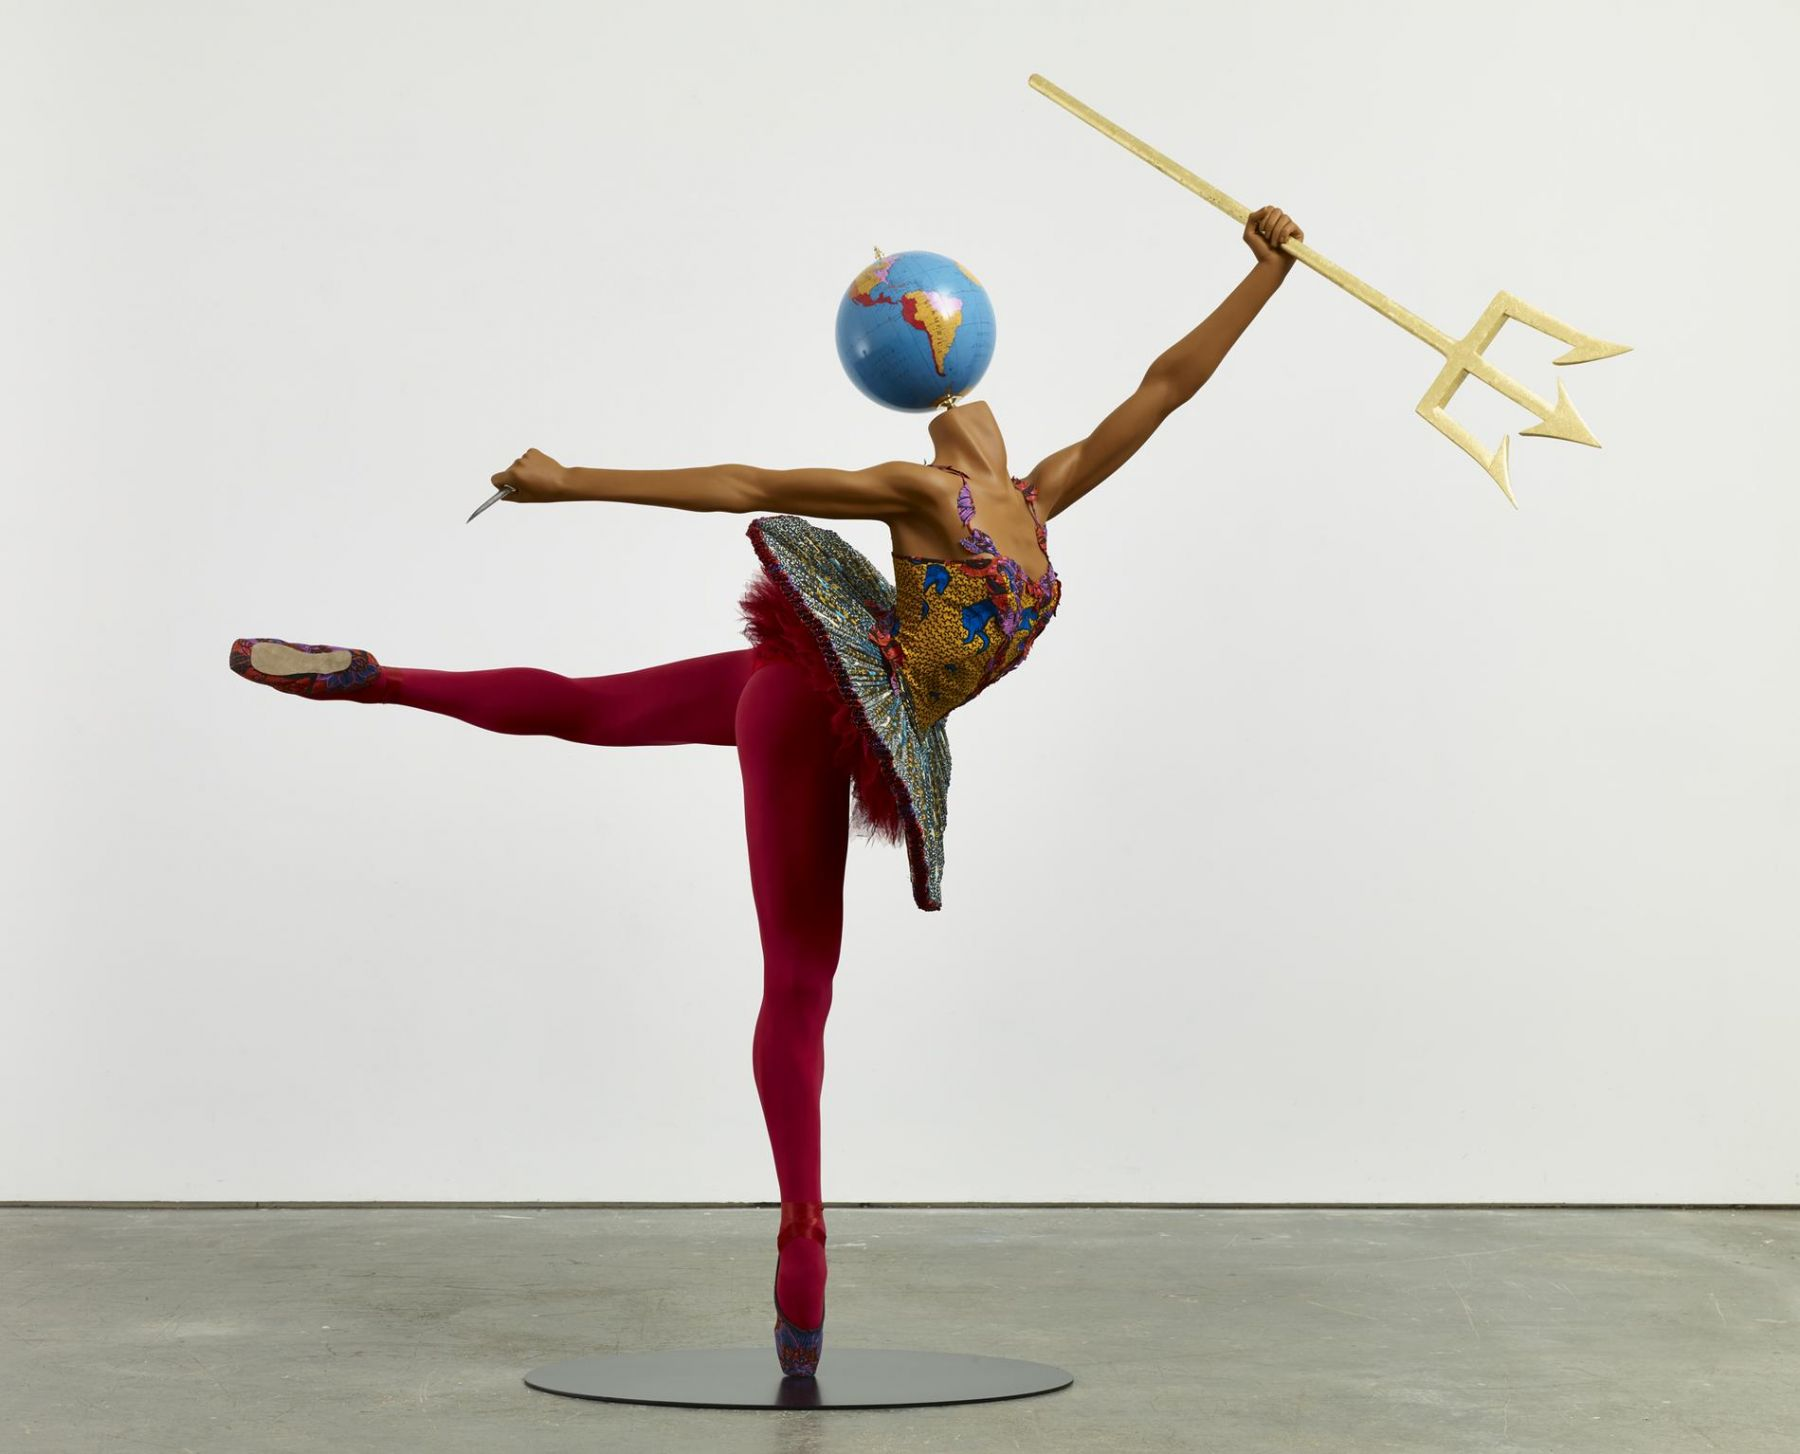 , YINKA SHONIBARE, MBE Ballet God (Poseidon), 2015 Fibreglass mannequin, Dutch wax printed cotton textile, trident, dagger, globe, pointe shoes and steel baseplate 82 1/4 x 87 x 35 3/8 in. (209 x 221 x 90 cm)